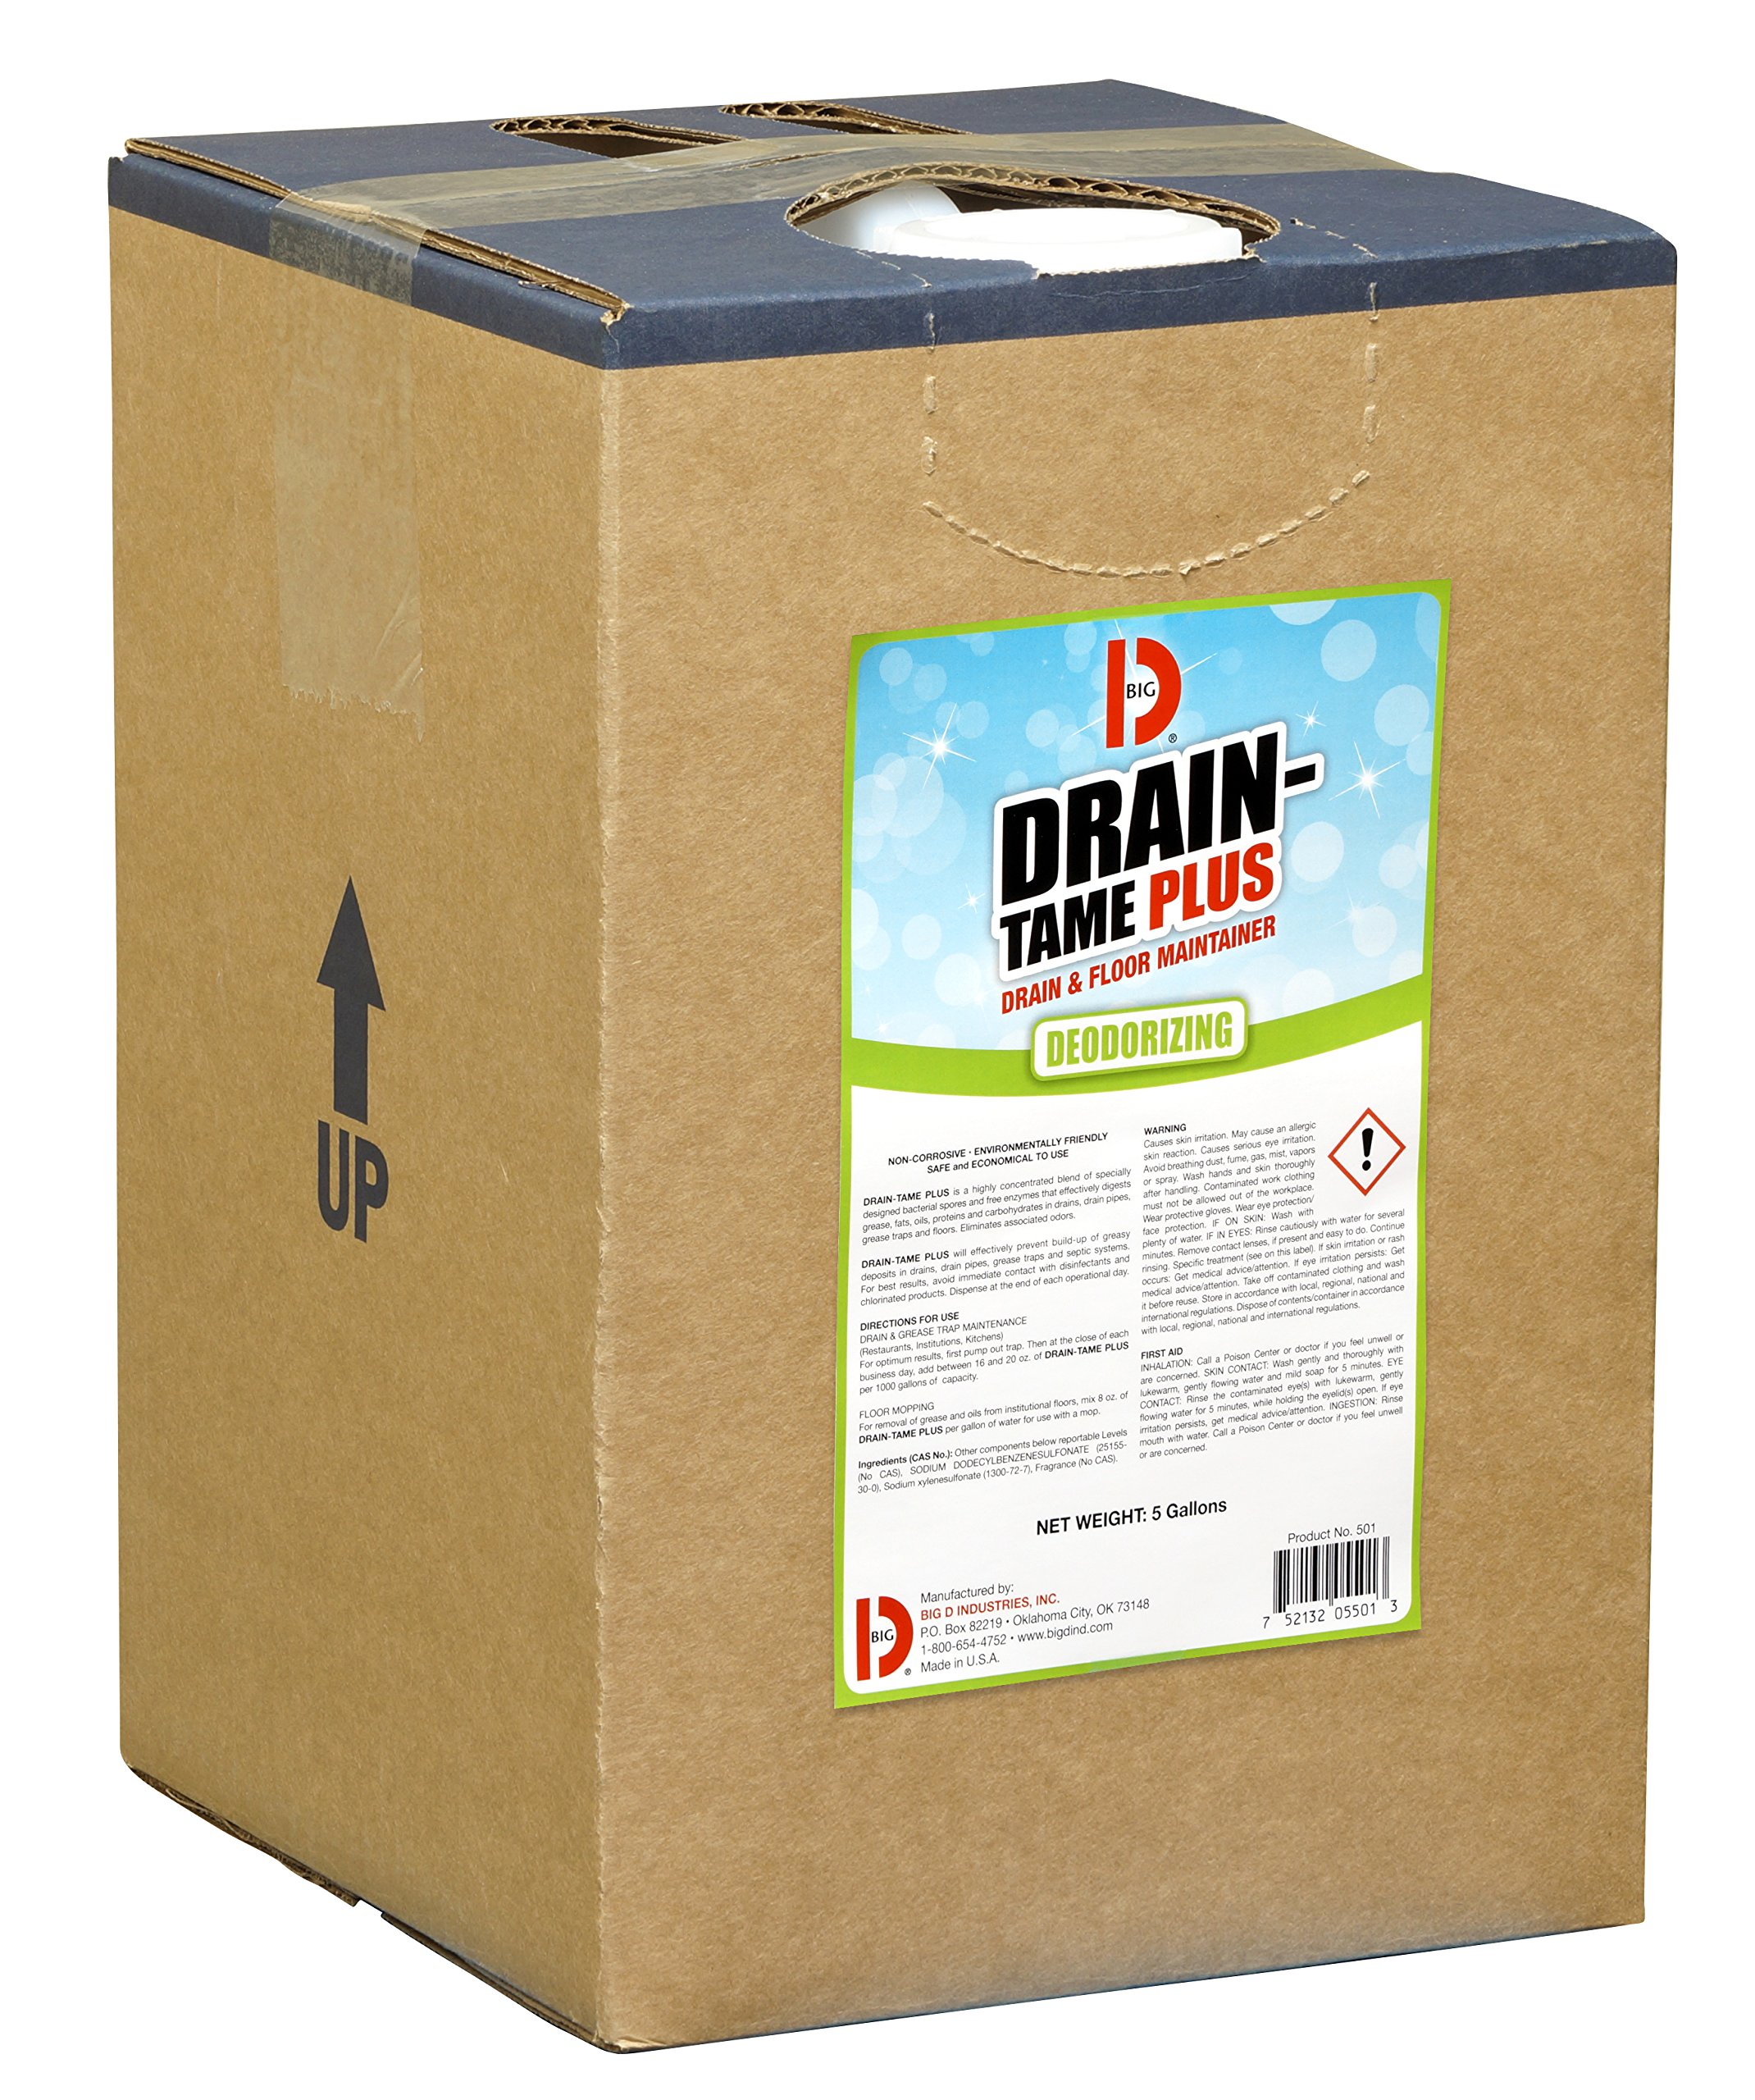 Big D 5501 Drain-Tame Plus Drain & Floor Maintainer, 5 Gallon Pail - Digests grease, proteins, fats, oils, waste - Ideal for use in grease traps, restaurants, septic systems and institutional floors